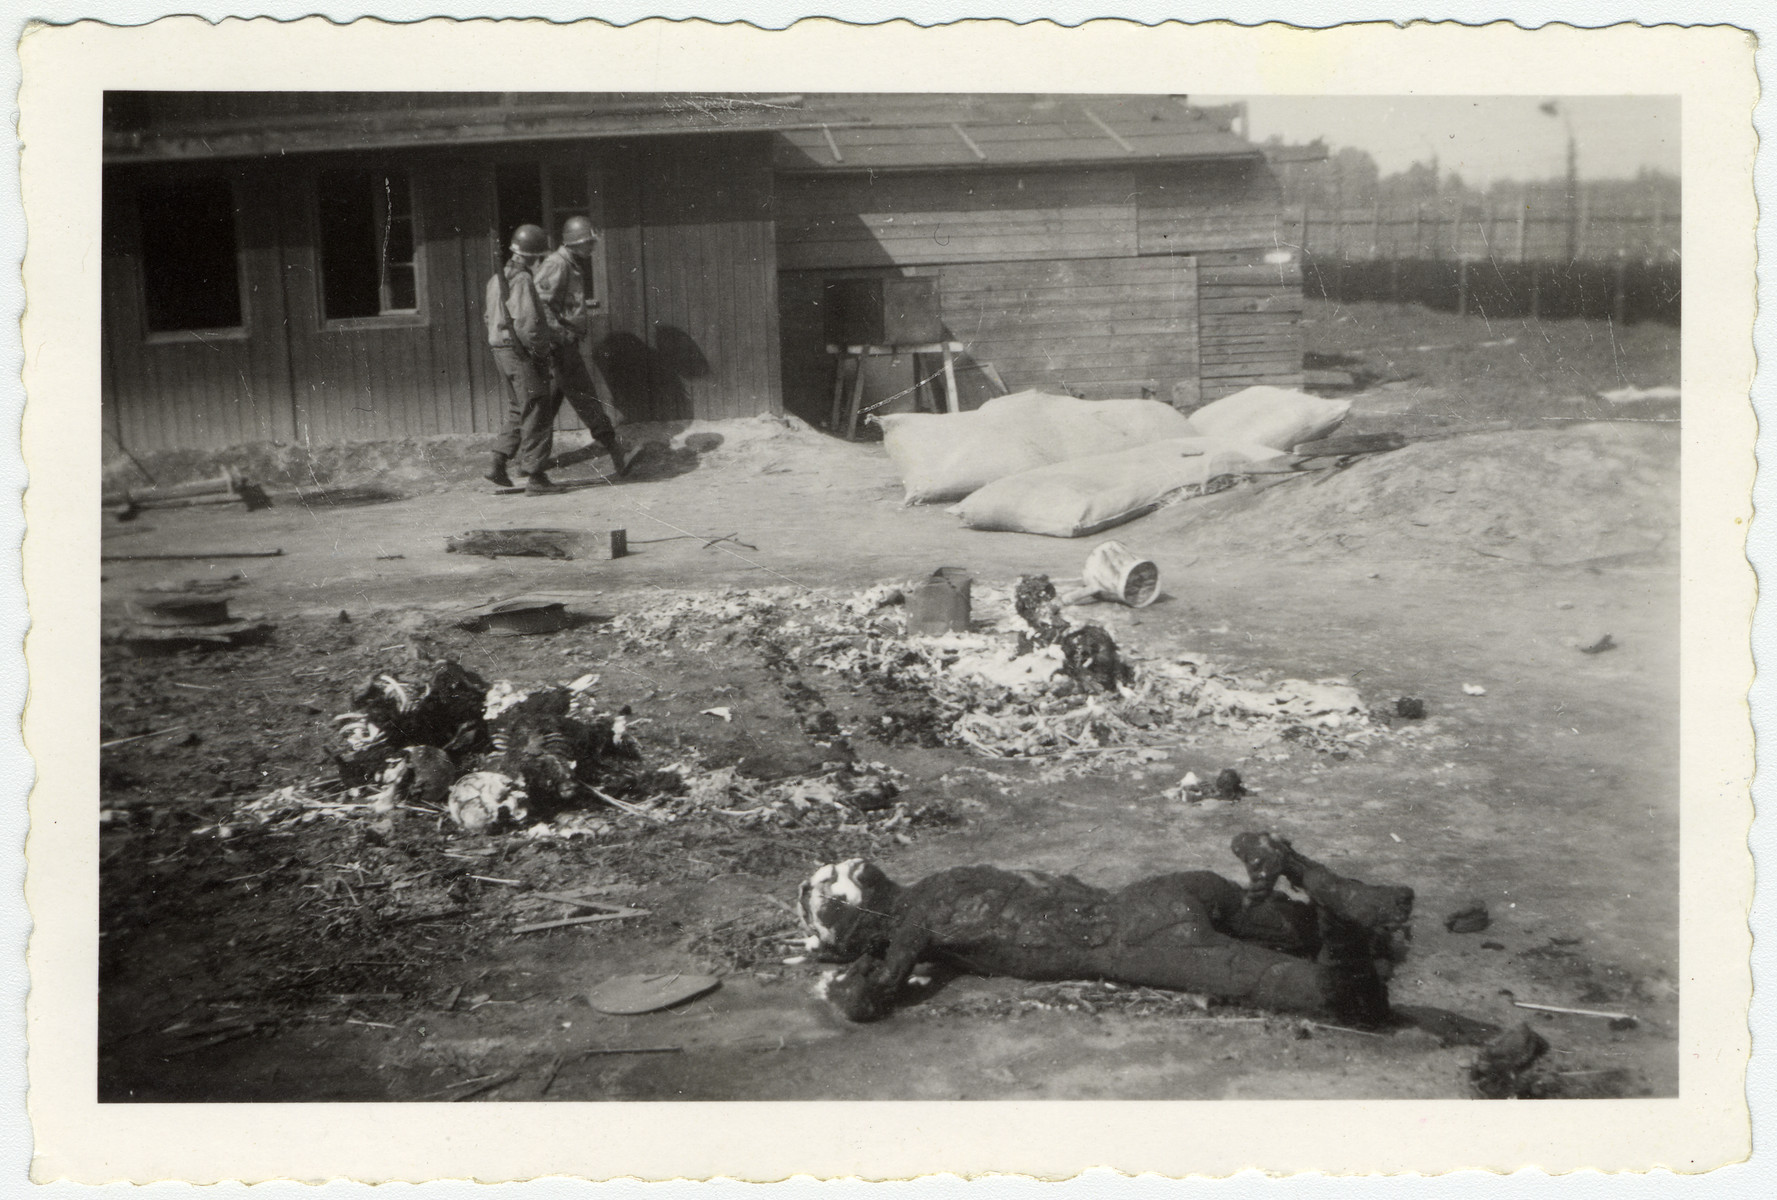 American soldiers walk past corpses and skeletons lying on the grounds of Leipzig-Thekla.